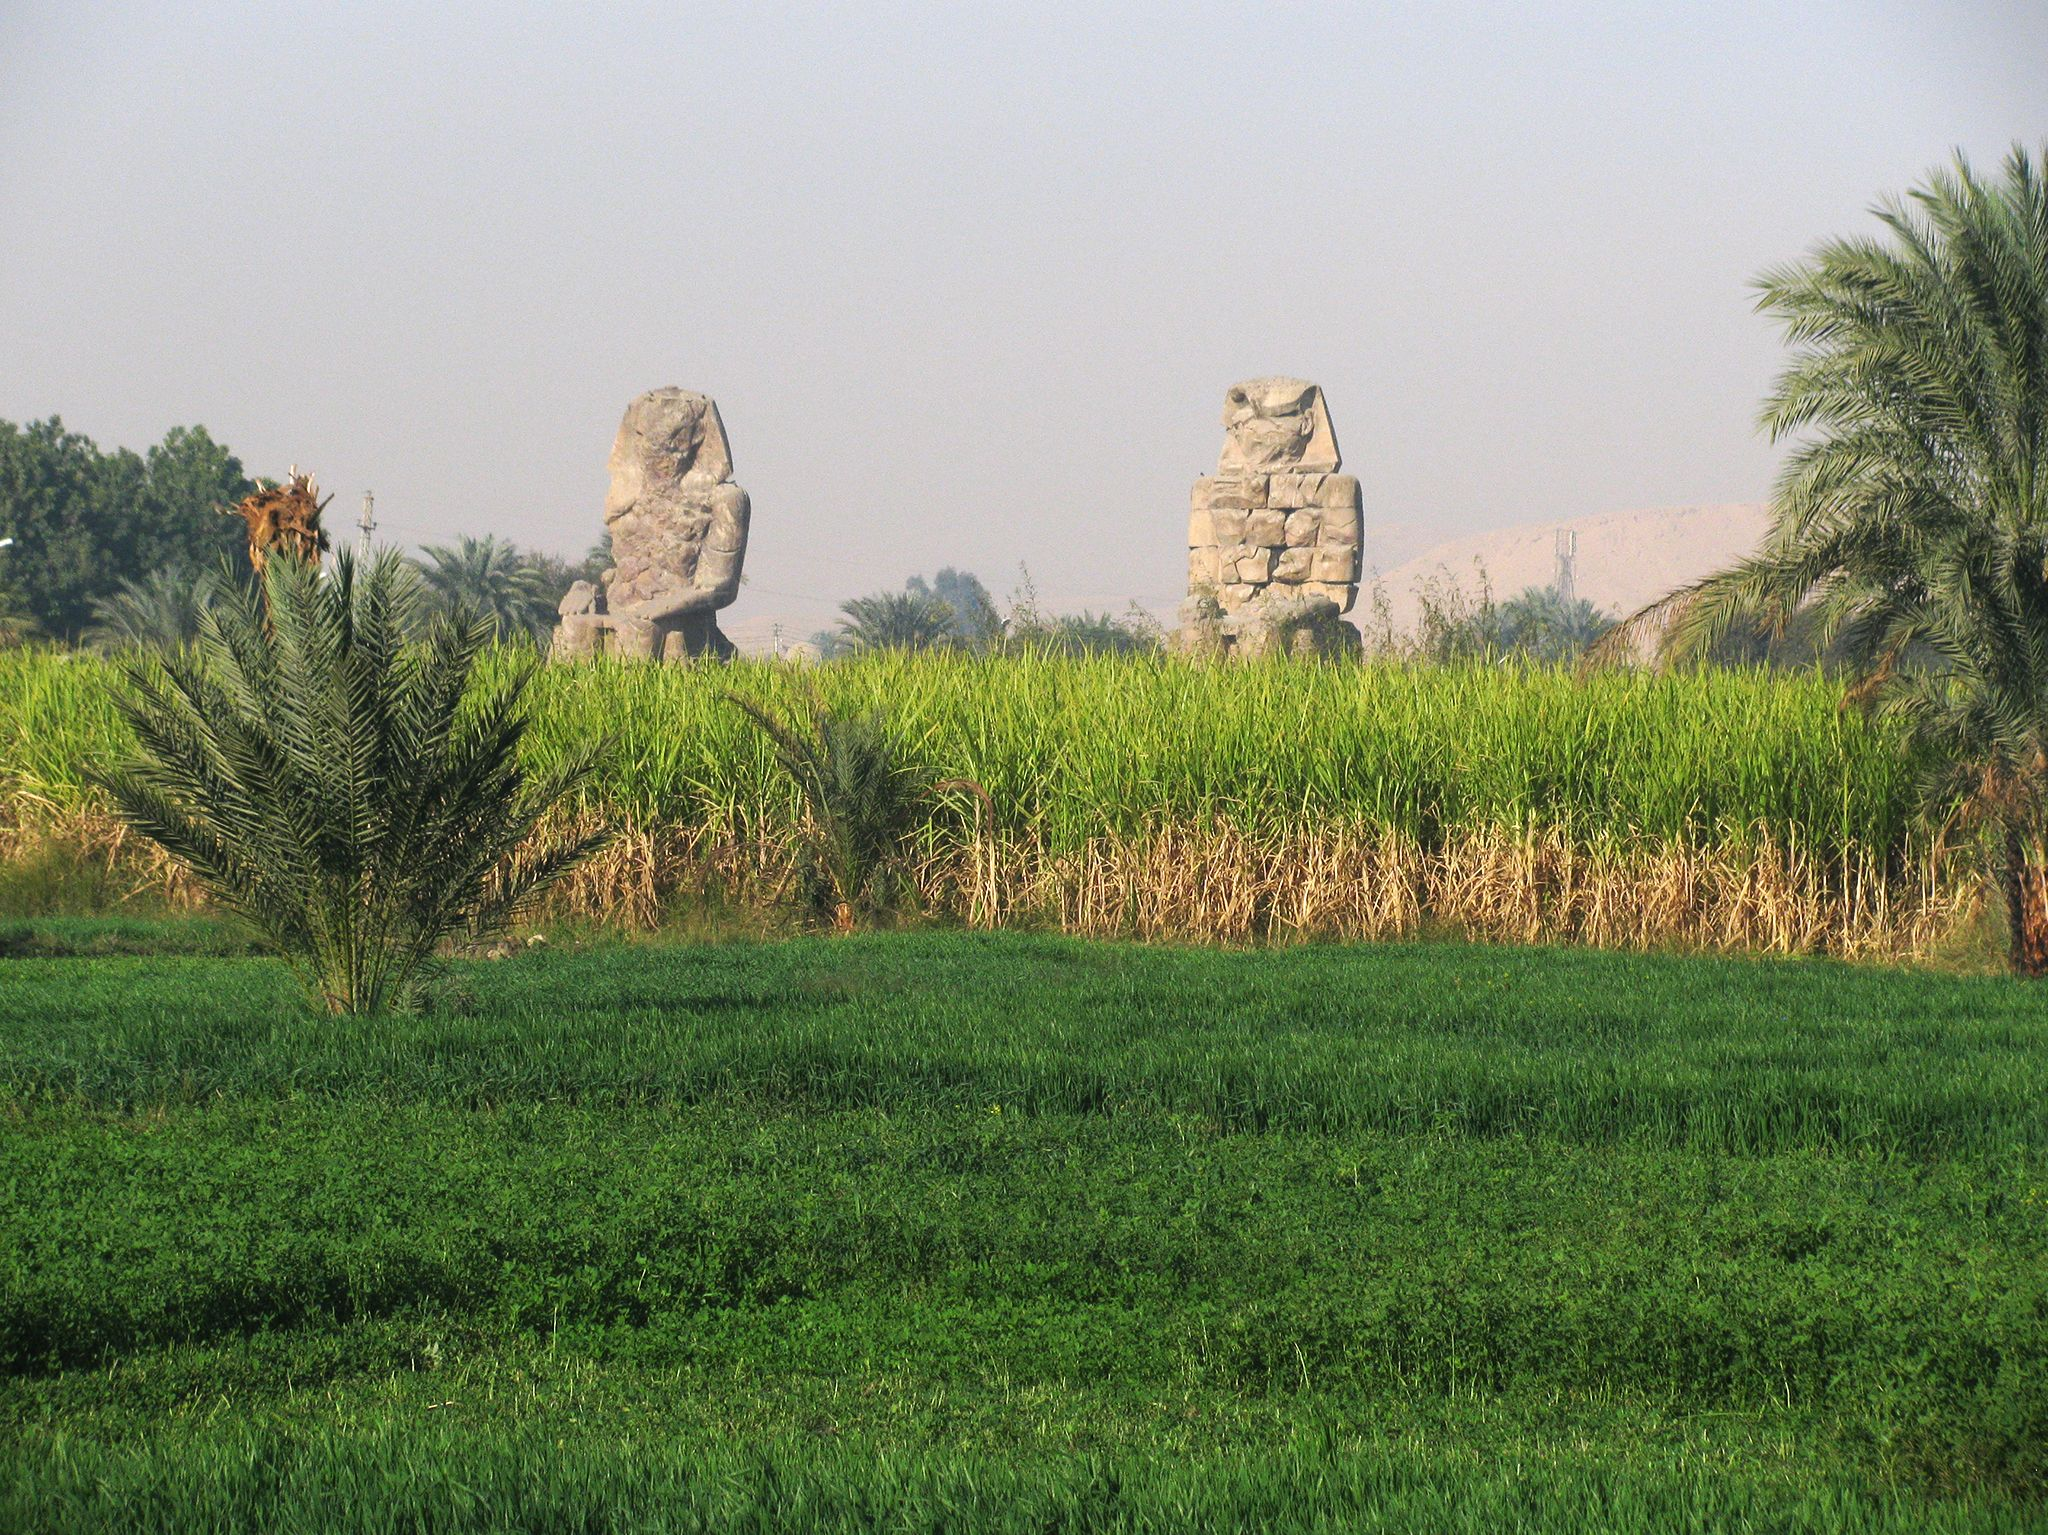 The so-called Colossi of Memnon surrounded by fields. Until recently they were all that remained... [Foto del giorno - aprile 2019]